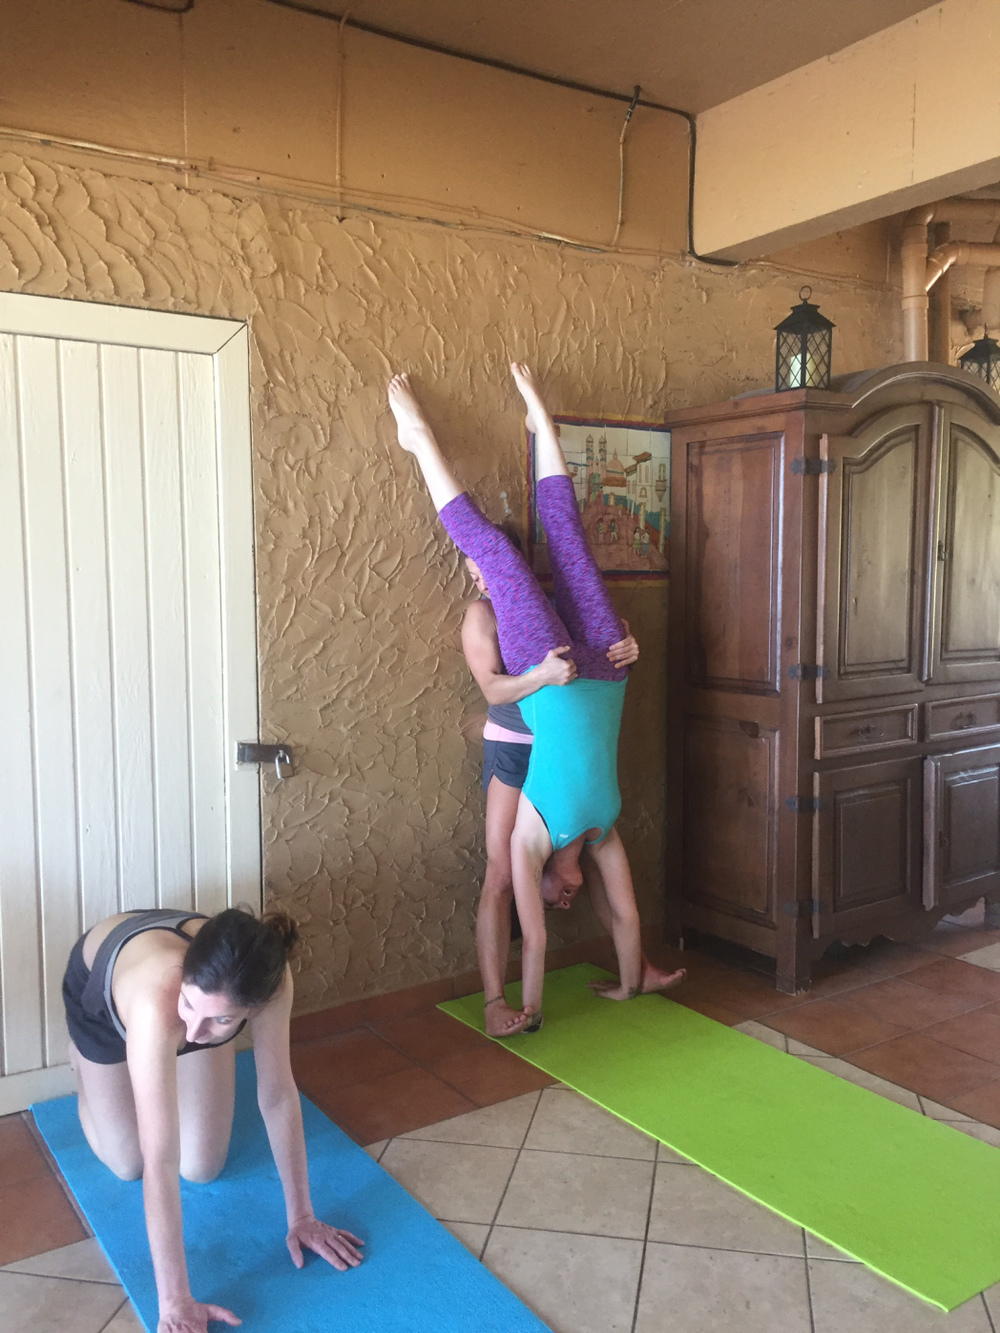 My less-than-graceful handstand.